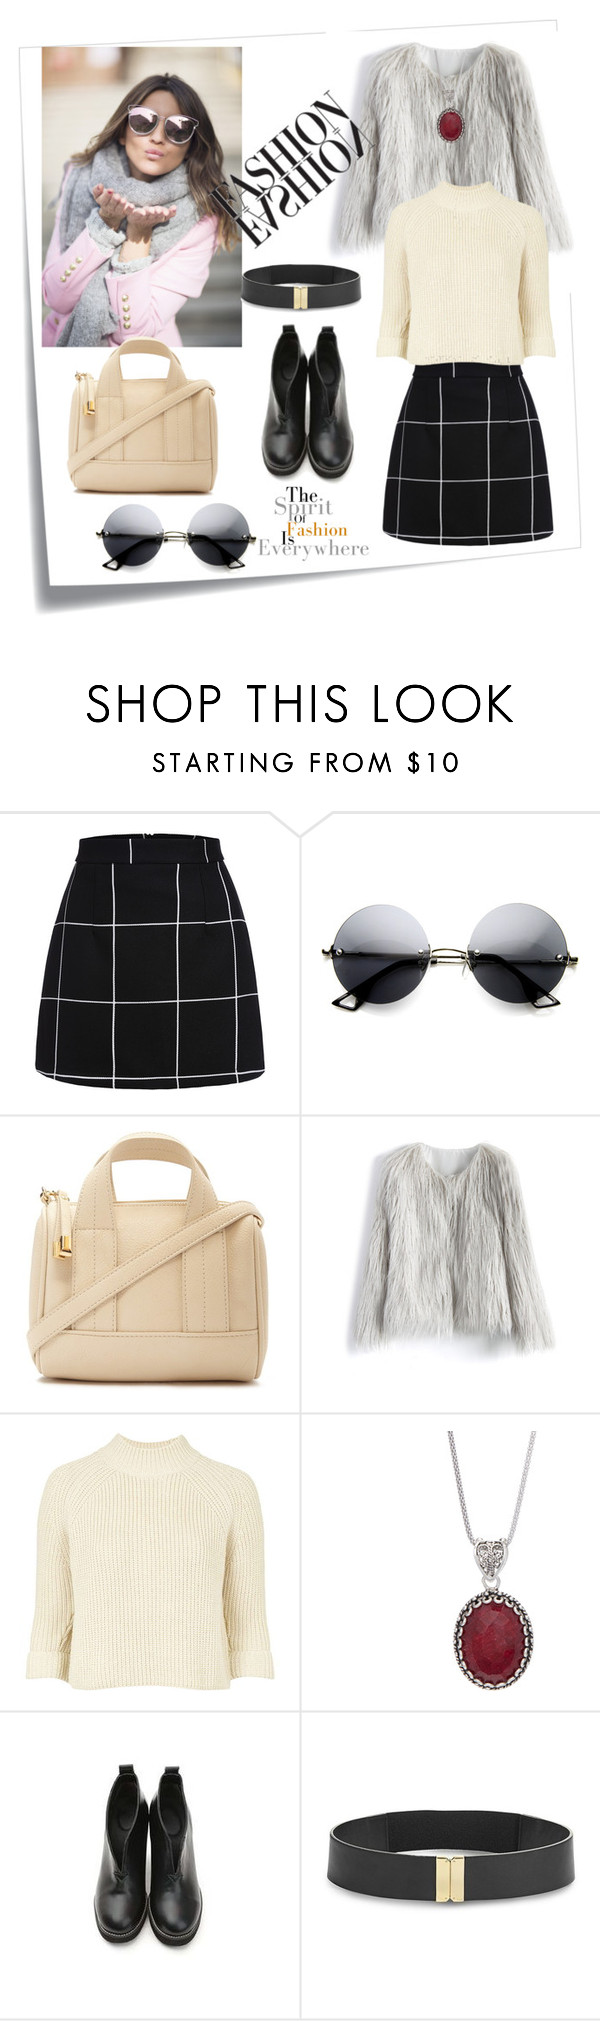 """""""Out Walking Fashion Street, Awesome Budget-Vegan Varsion"""" by widegren-rosa on Polyvore featuring Post-It, Forever 21, Chicwish, Topshop, midnightCOCO and Lauren Ralph Lauren"""